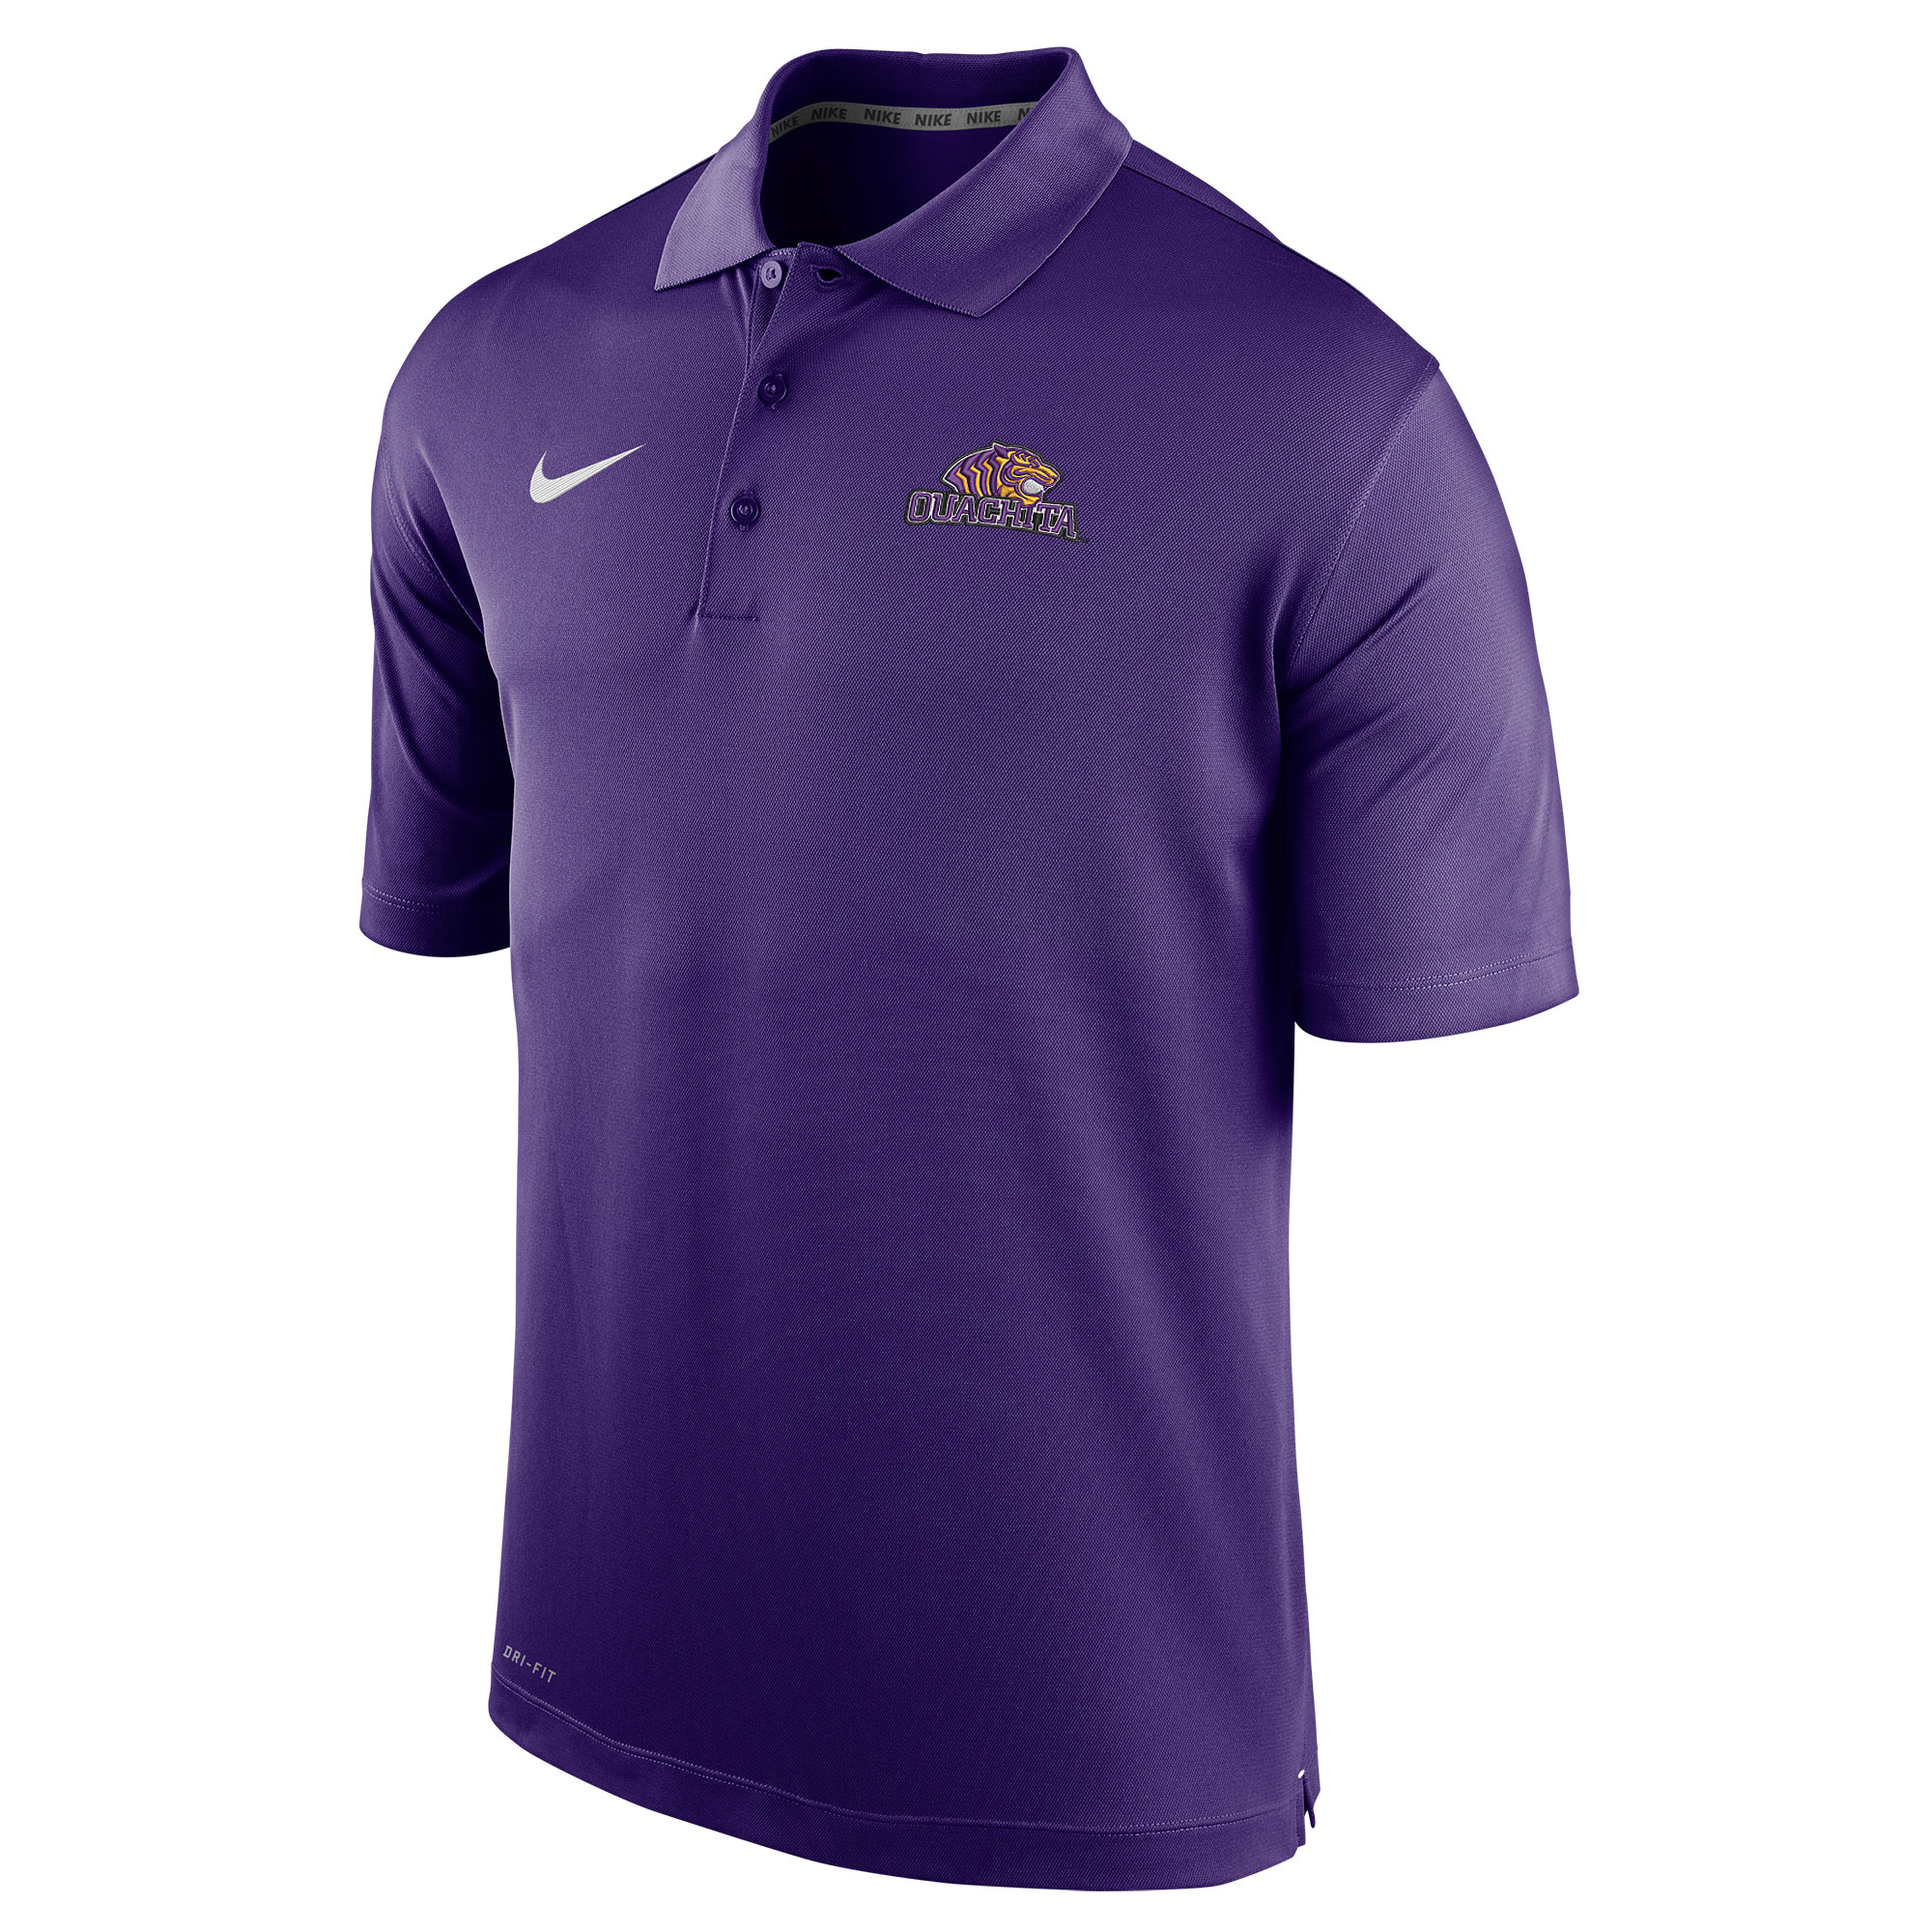 OUACHITA LOGO NIKE DRI-FIT POLO